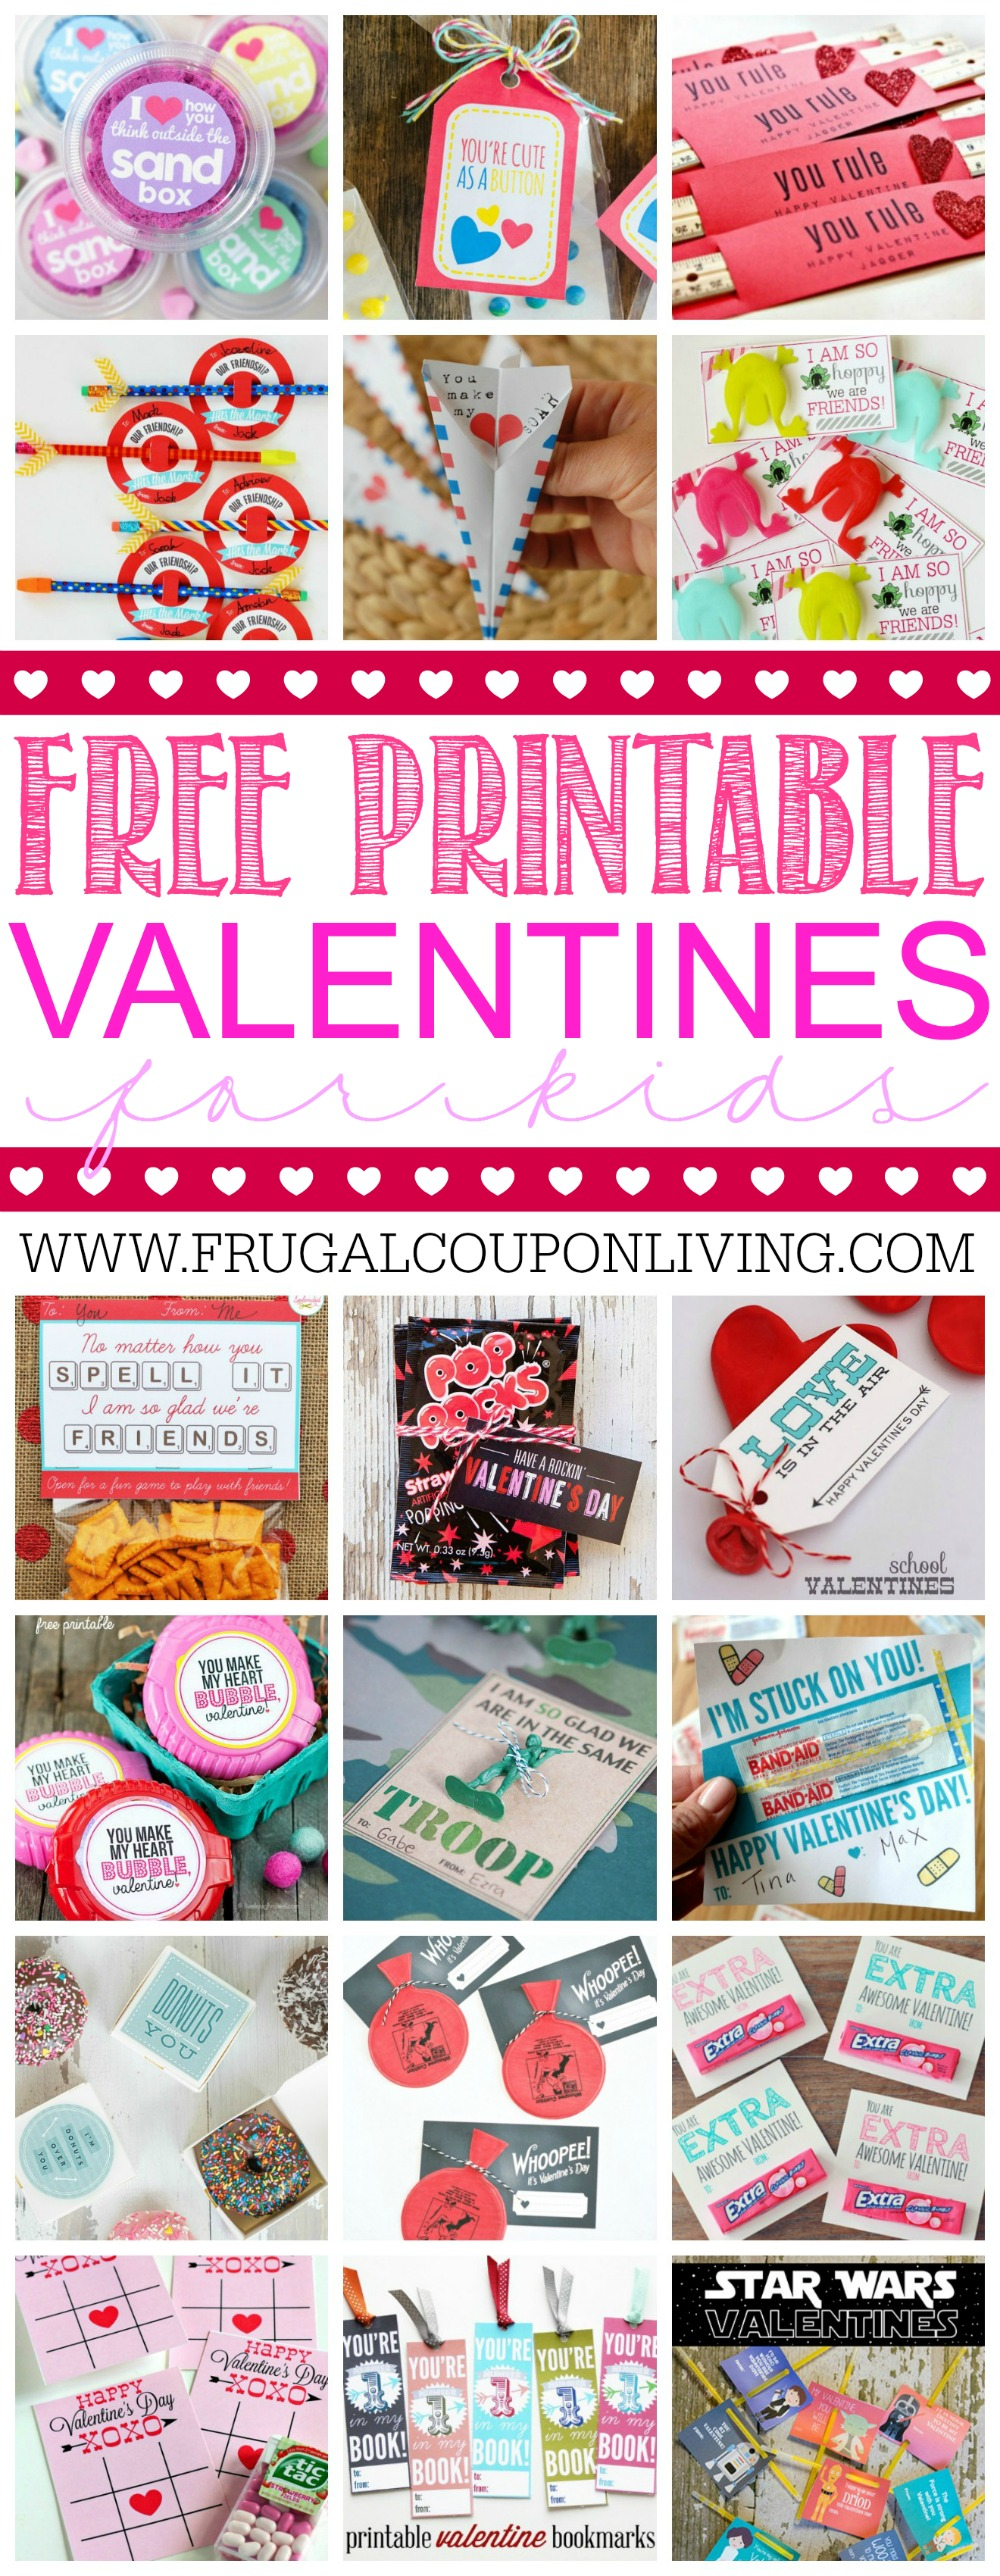 Printable-valentines-for-the-Kids-collage-frugal-coupon-living